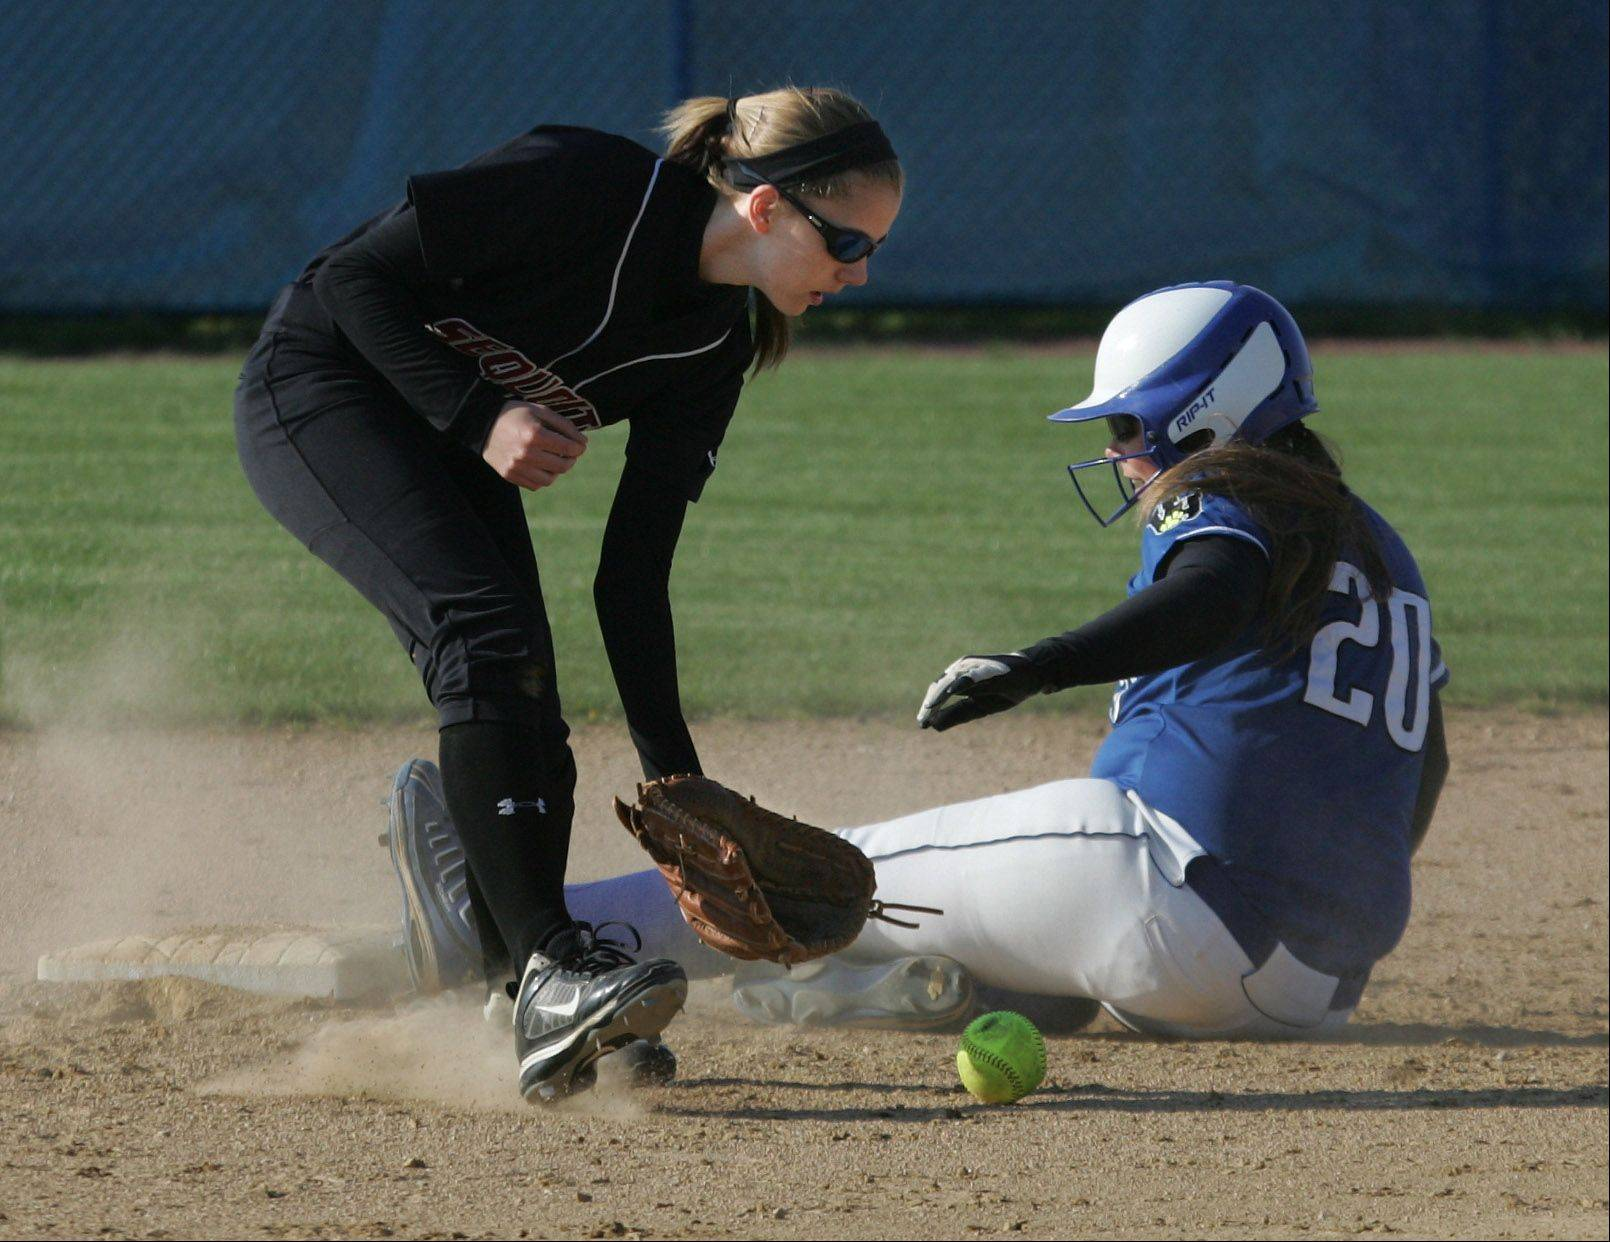 Vernon Hills baserunner Anya Mollenhauer slides safely into second base as Antioch shortstop Jessica Pedersen catches the ball in the second inning Tuesday at Vernon Hills.